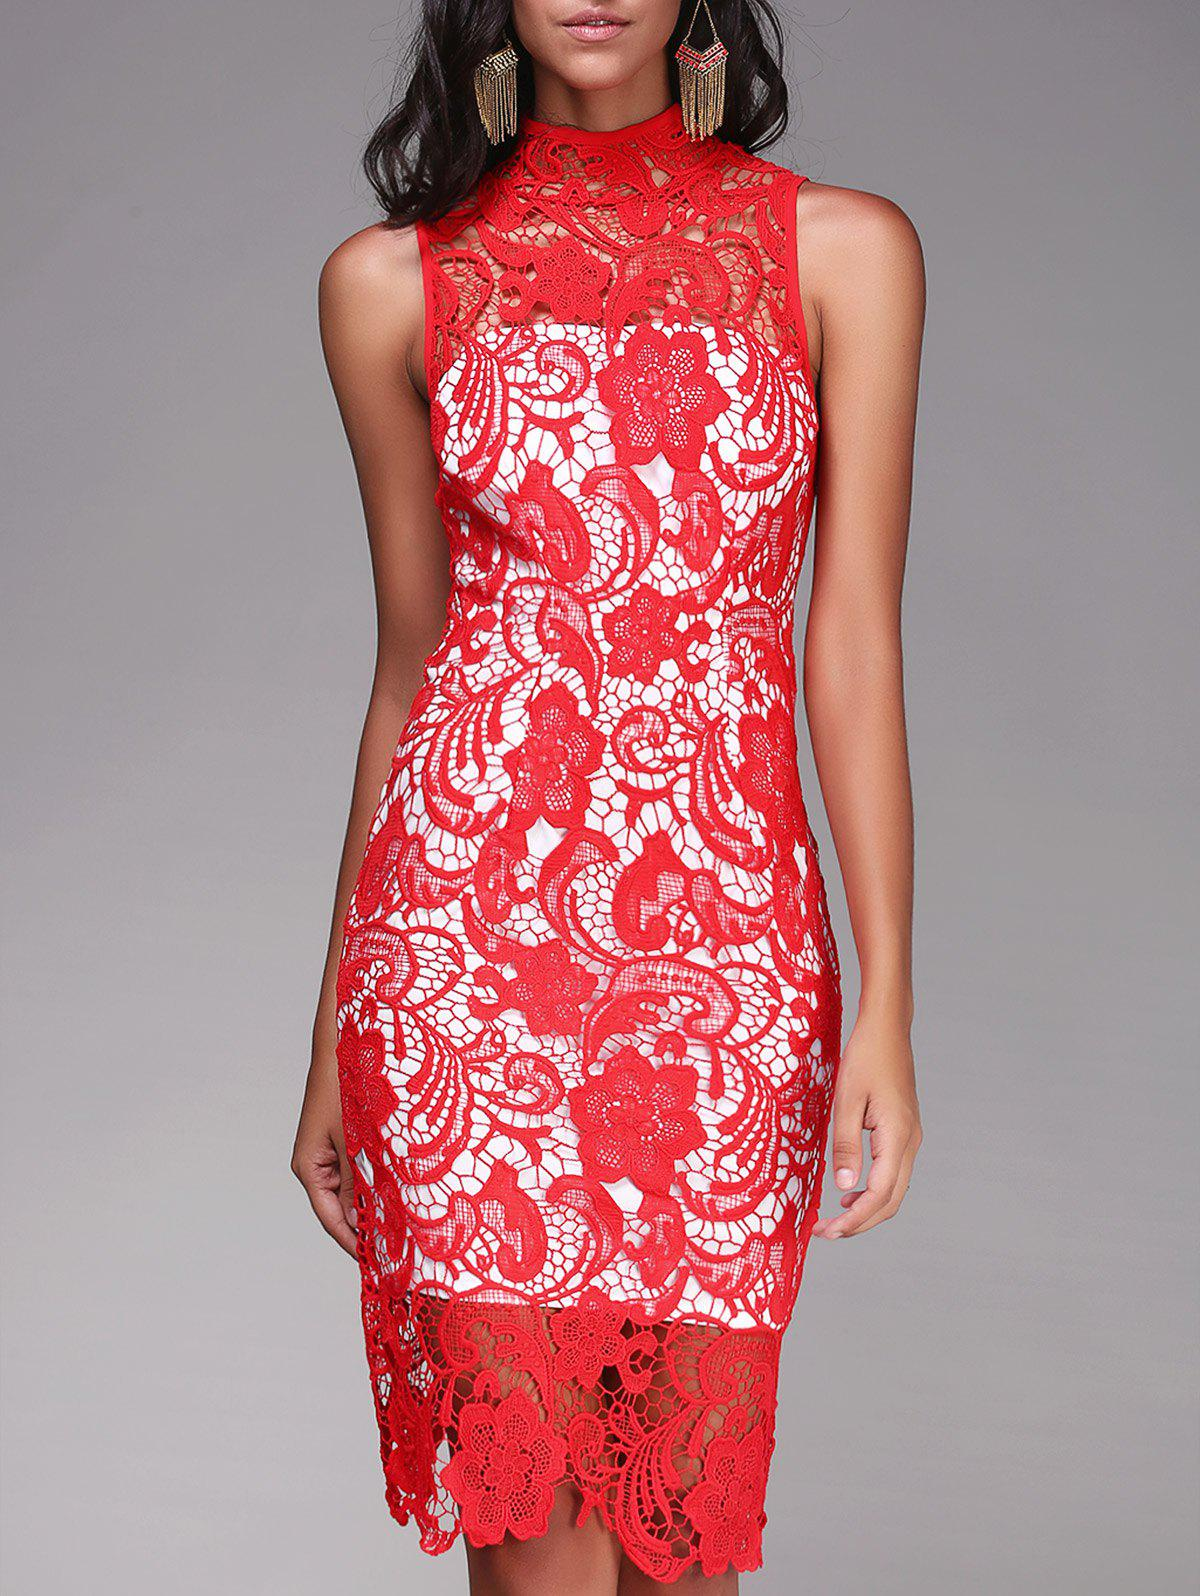 Fashionable Women's Round Neck Sleeveless Cut Out Lace Dress - RED XL